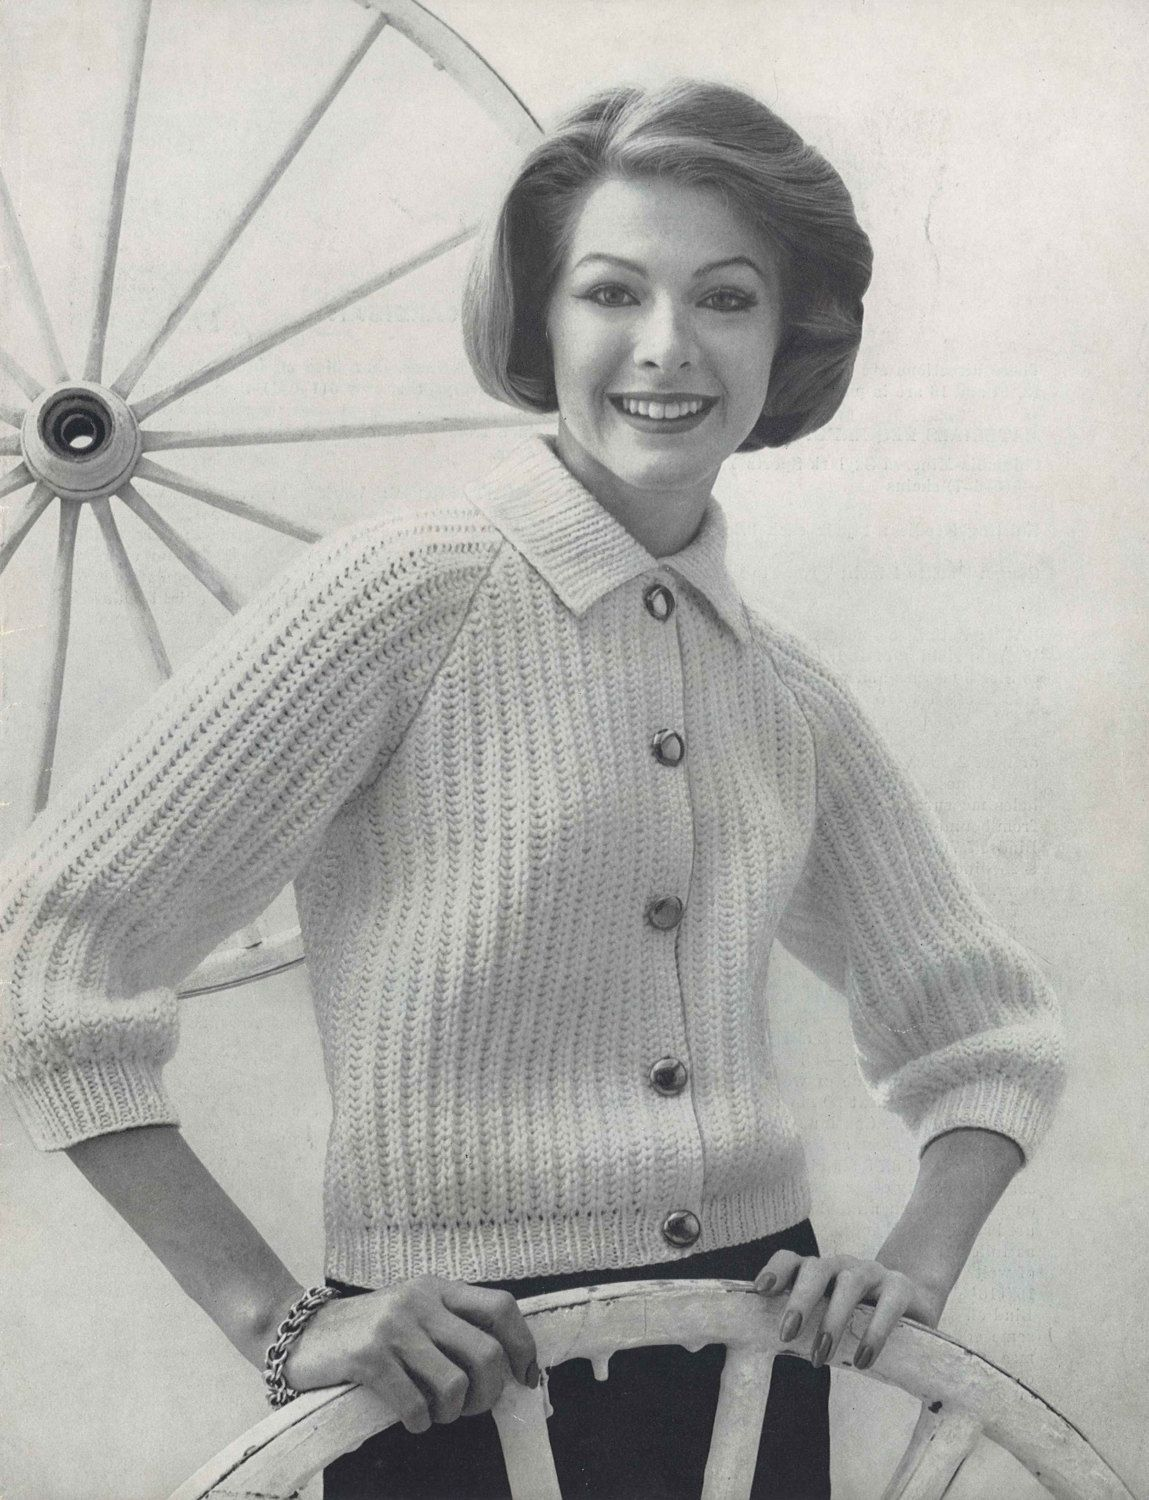 Brighton brioche 1950s knitting collared cardigan sweater jacket brighton brioche 1950s knitting collared cardigan sweater jacket top patterns 50s vintage pattern bankloansurffo Images